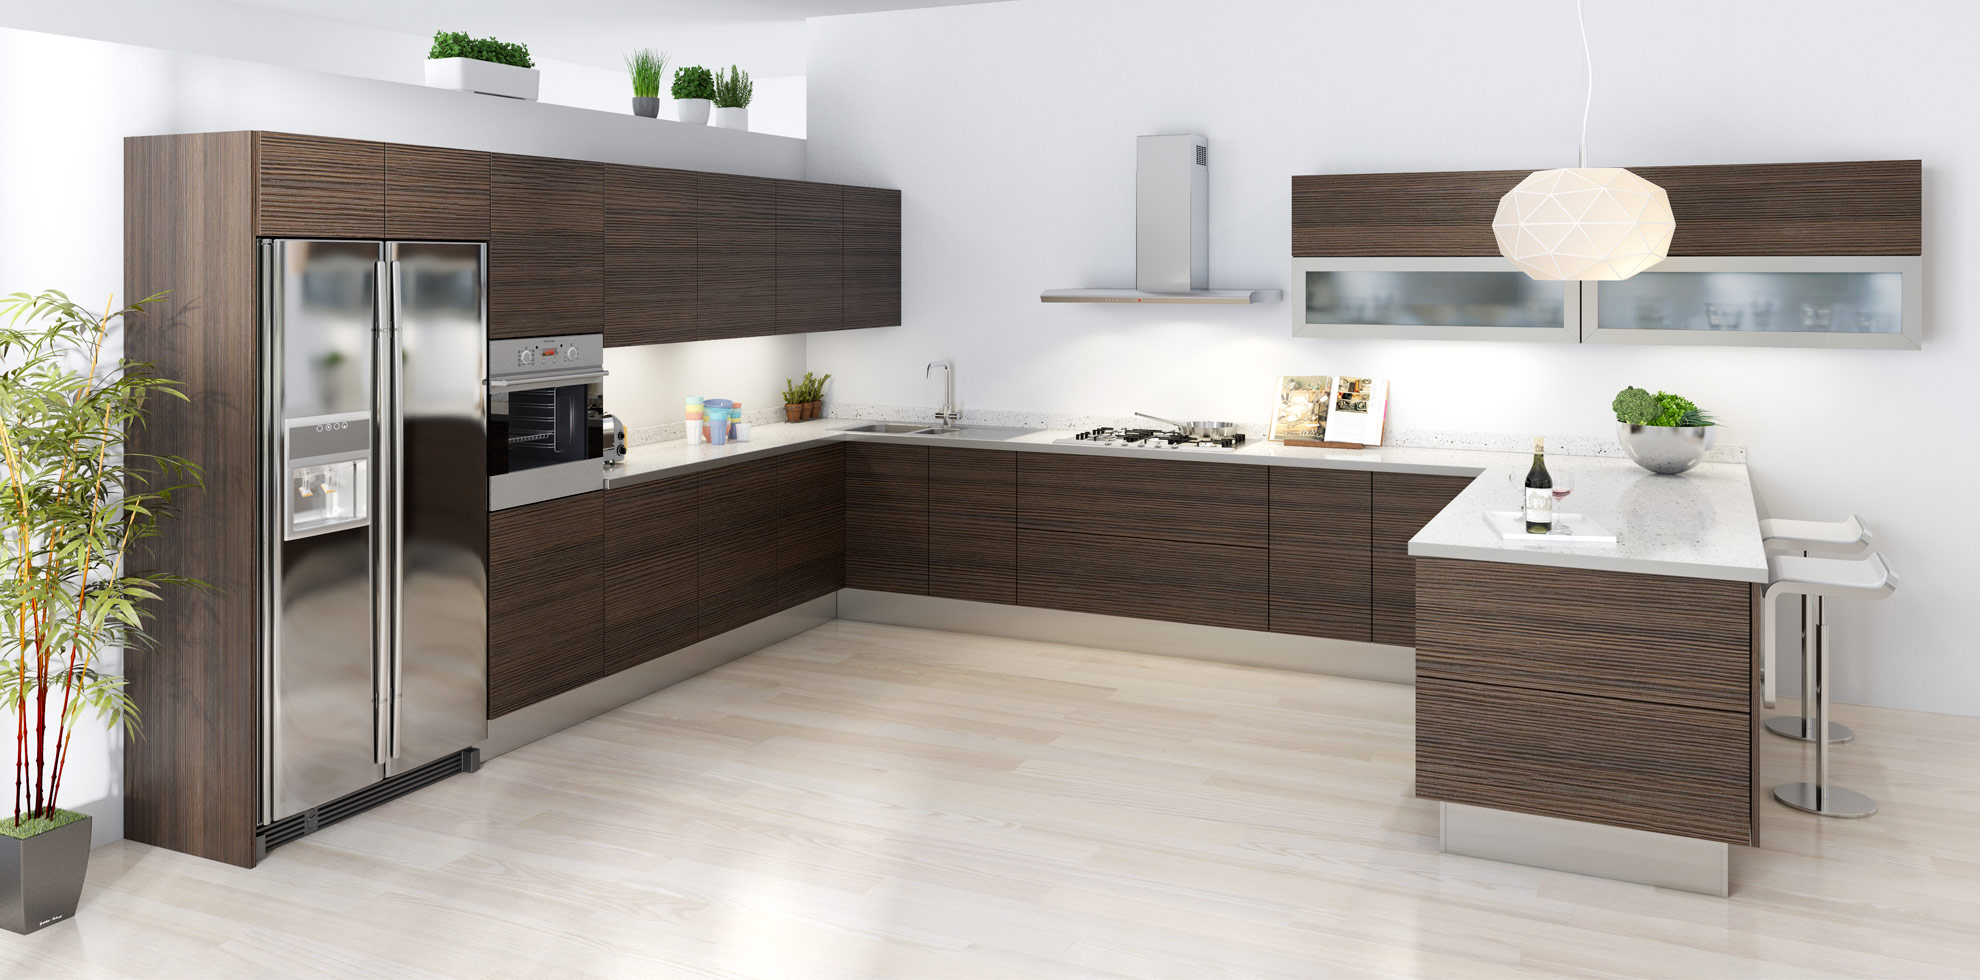 Modern kitchen cabinets with modern european kitchen cabinets with new modern kitchen cabinets with painting kitchen cabinets